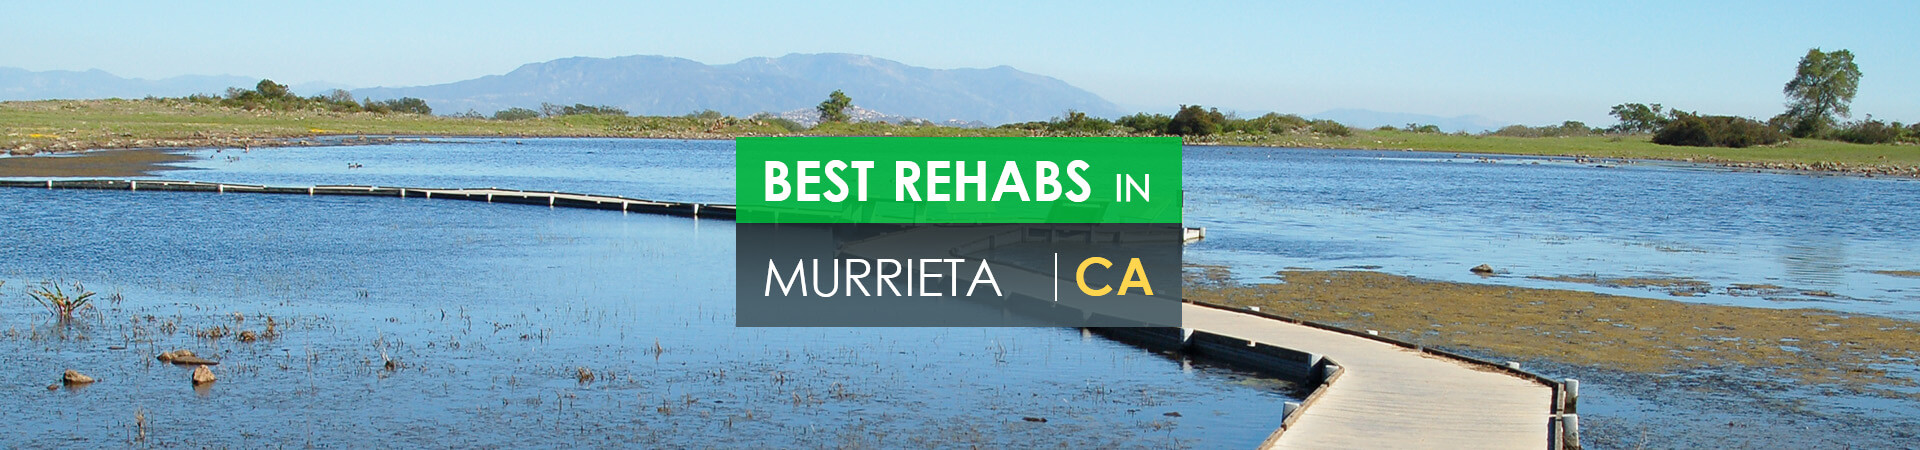 Best rehabs in Murrieta, CA